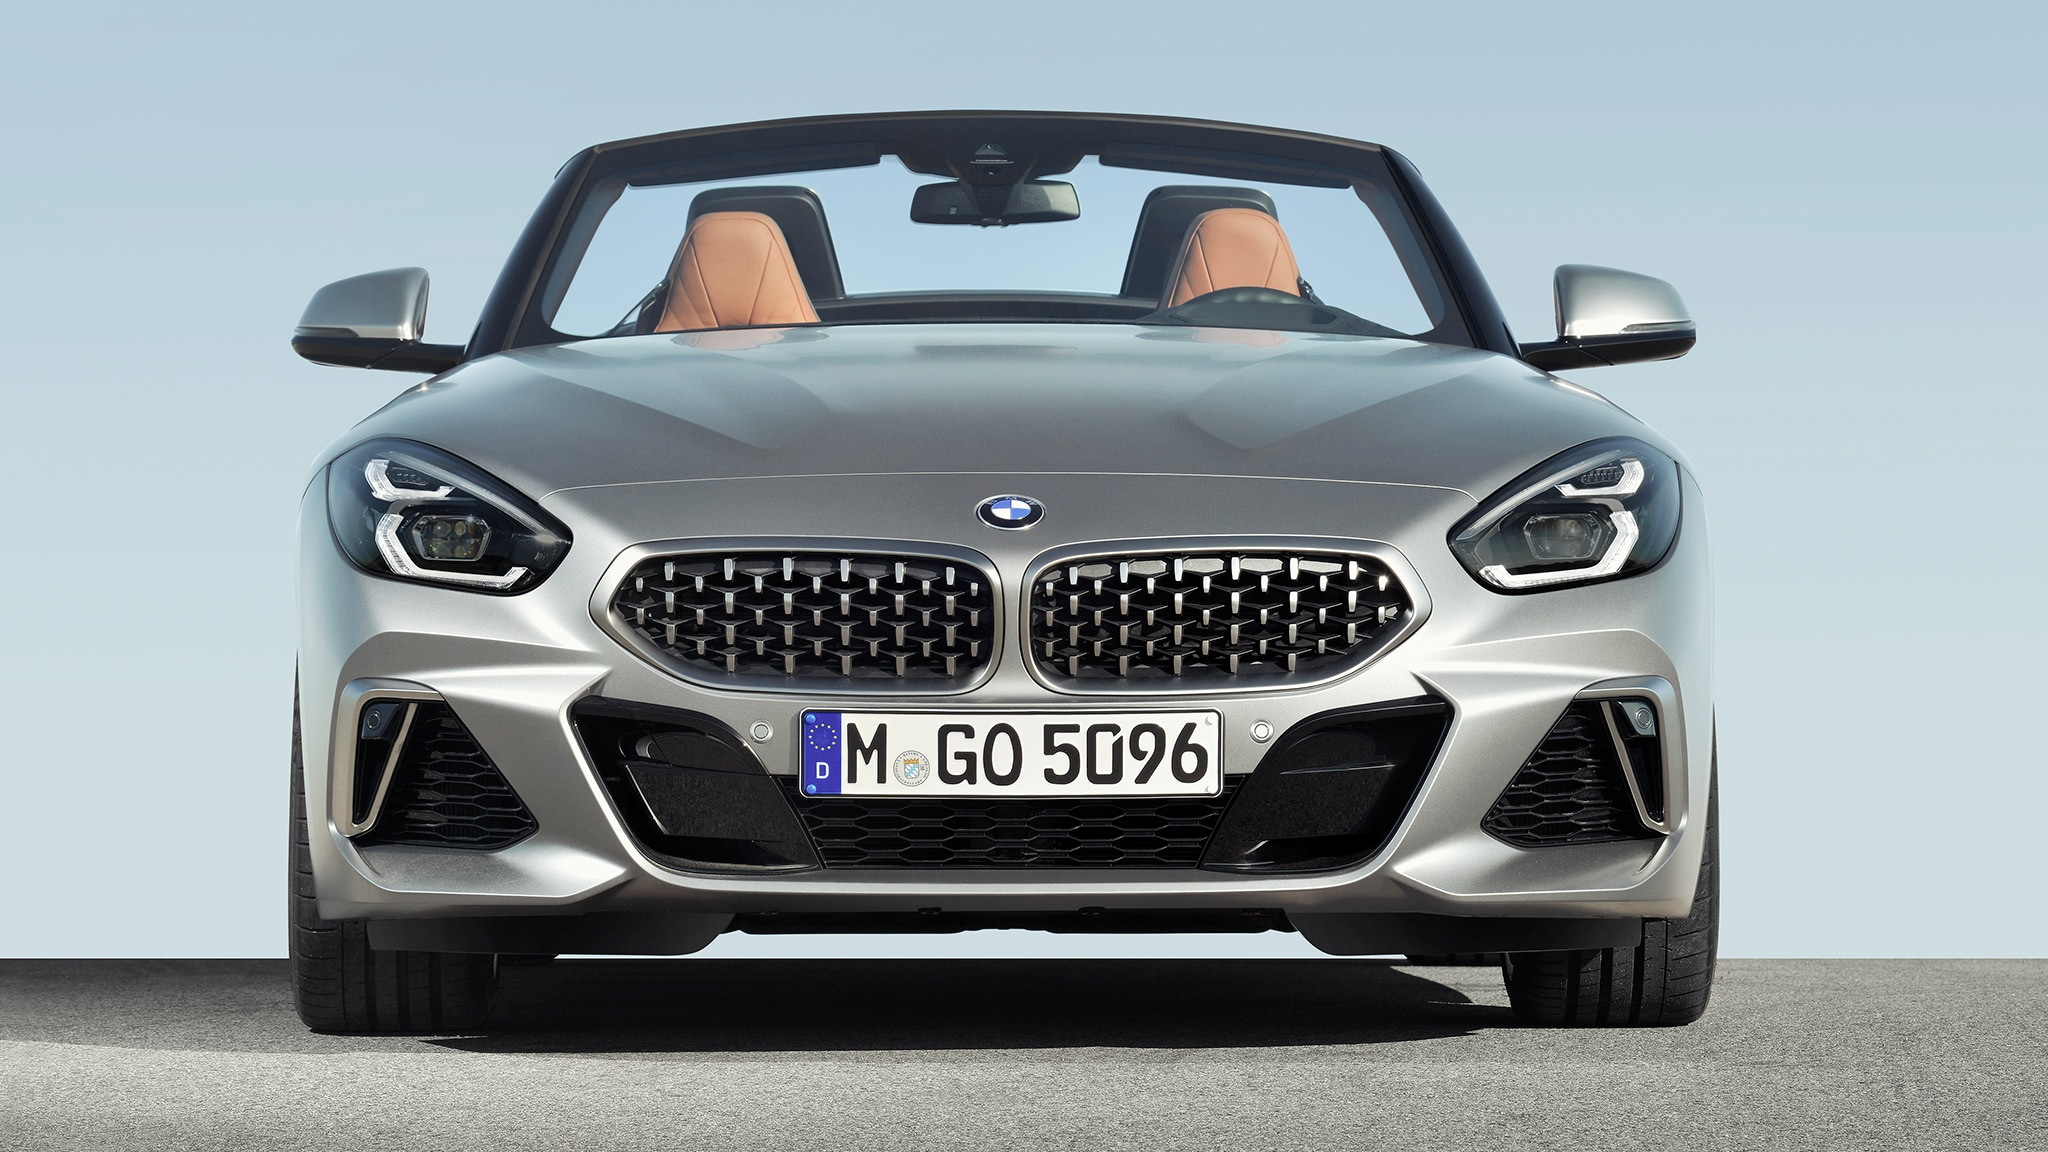 2019 Bmw Z4 Sdrive30i Makes 255 Horsepower Automobile